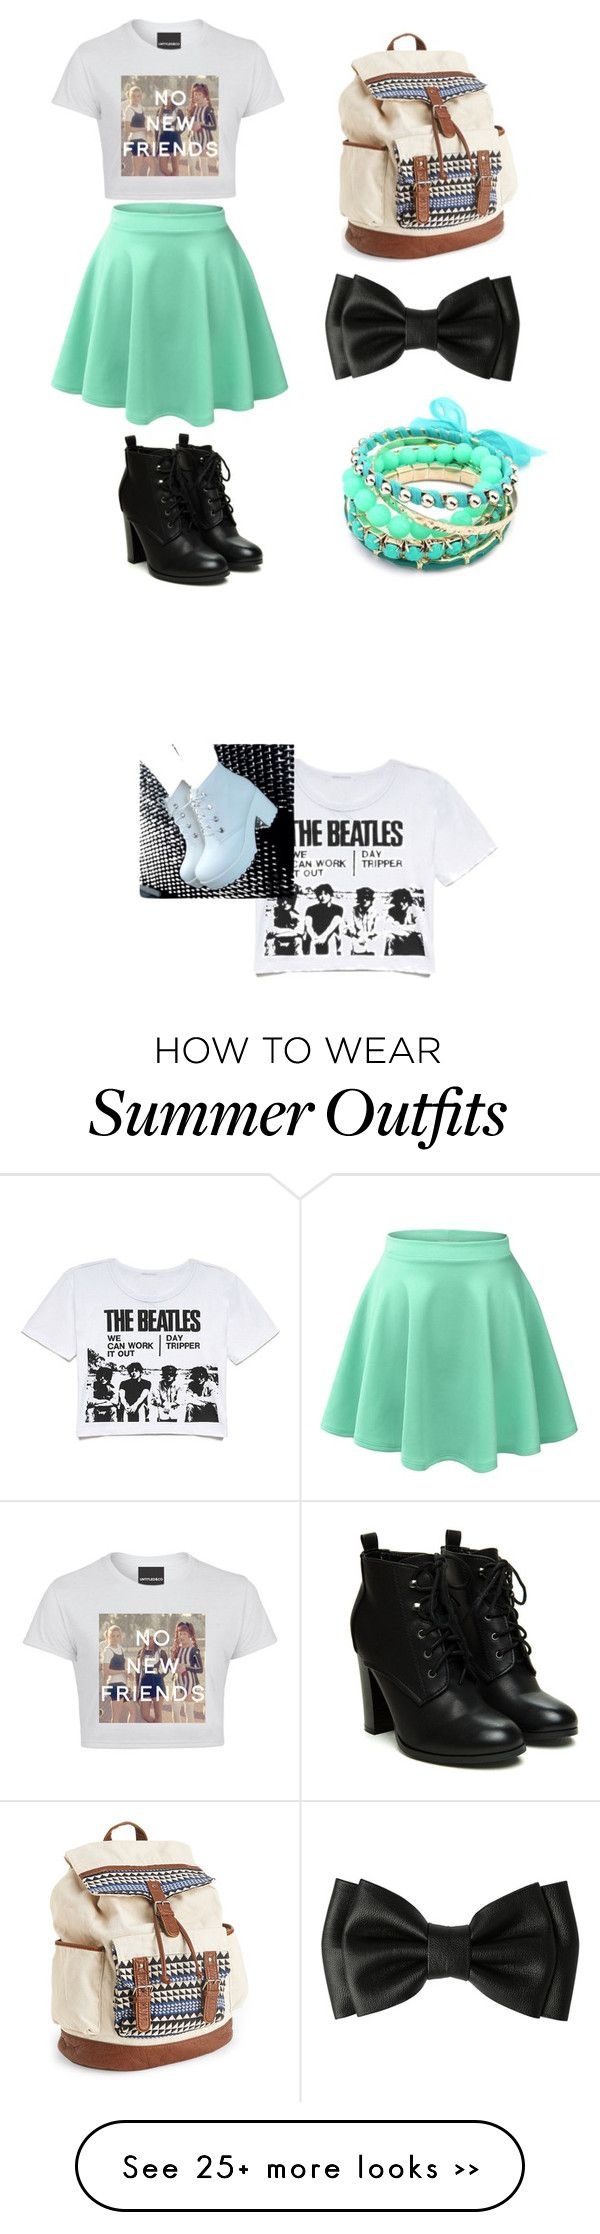 """summer outfit"" by kanybakken on Polyvore"